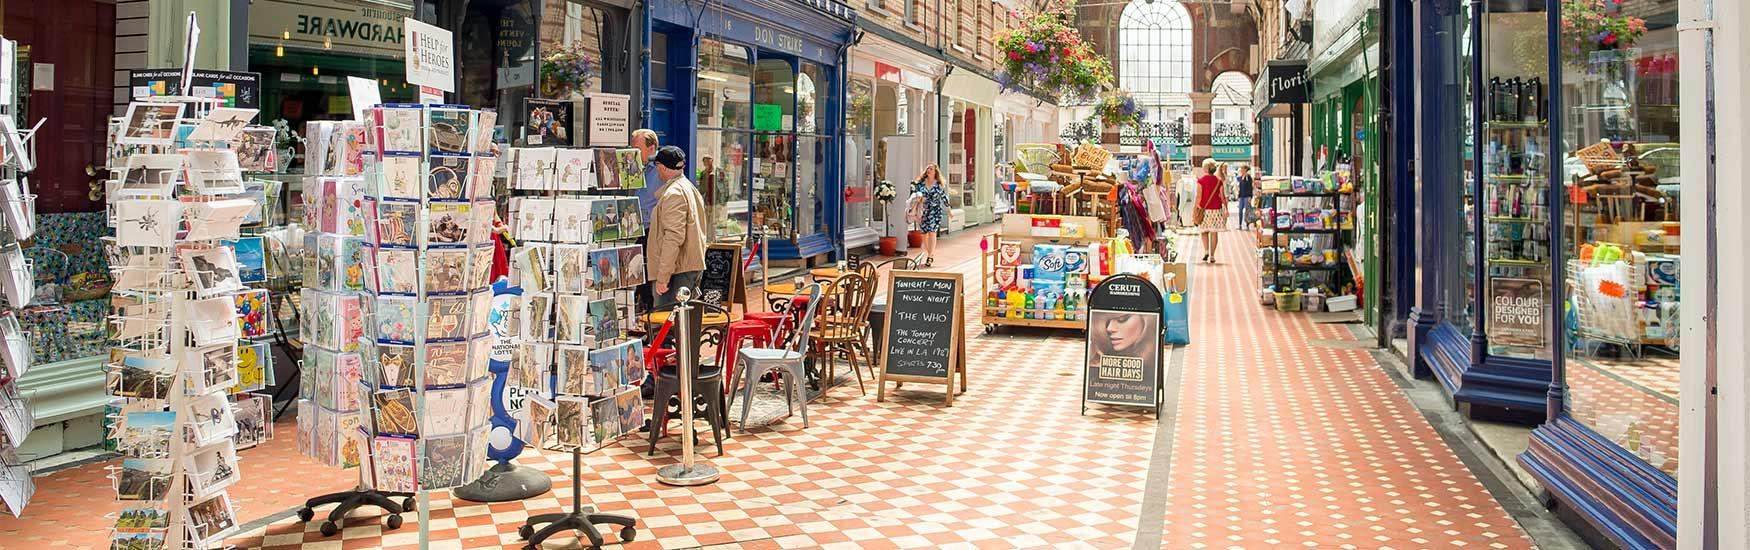 Westbourne shopping arcade showcasing goods and shops for keen Bournemouth shoppers